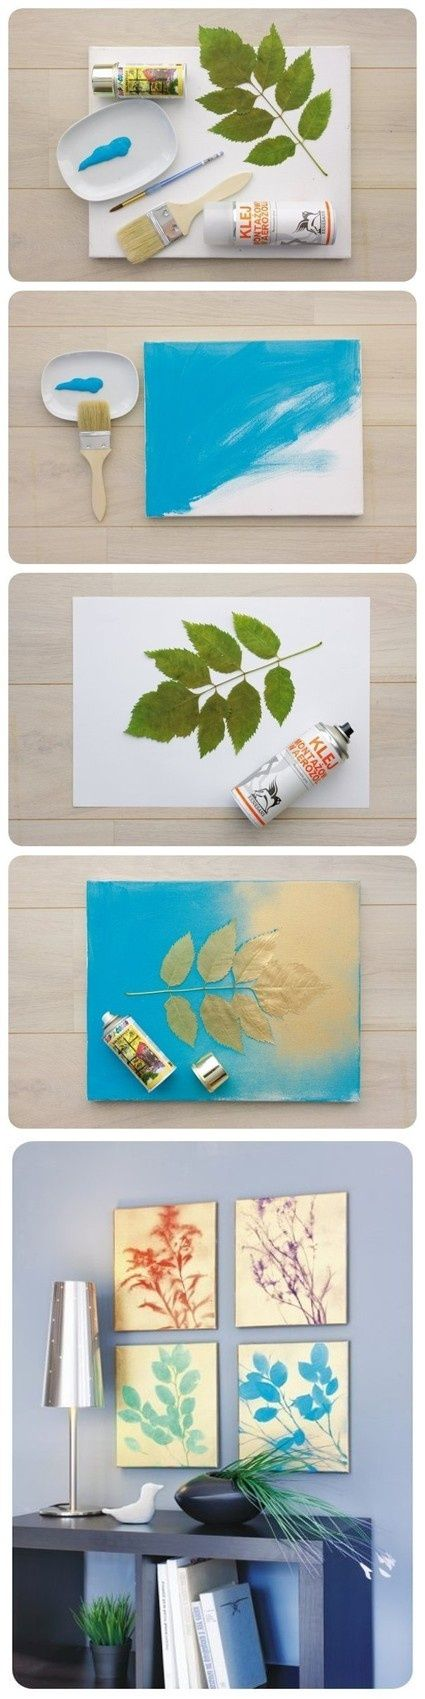 173 Creative and Awesome Do It Yourself Project Ideas ! | Just Imagine – Daily Dose of Creativity